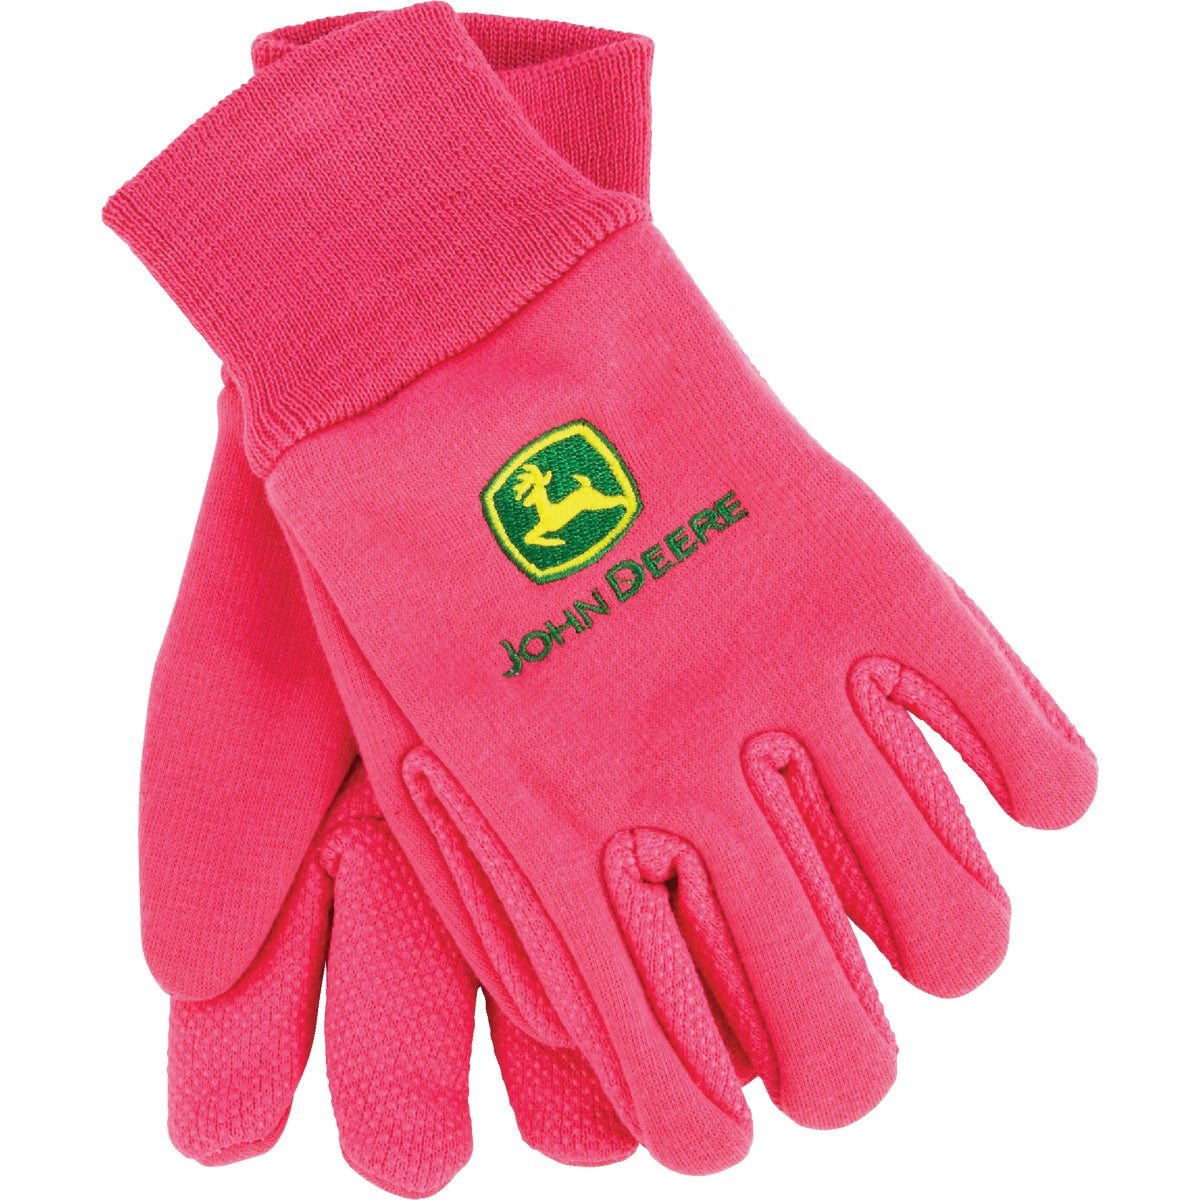 YOUTH PINK JERSEY GLOVE - JD00003/Y by West Chester Incom